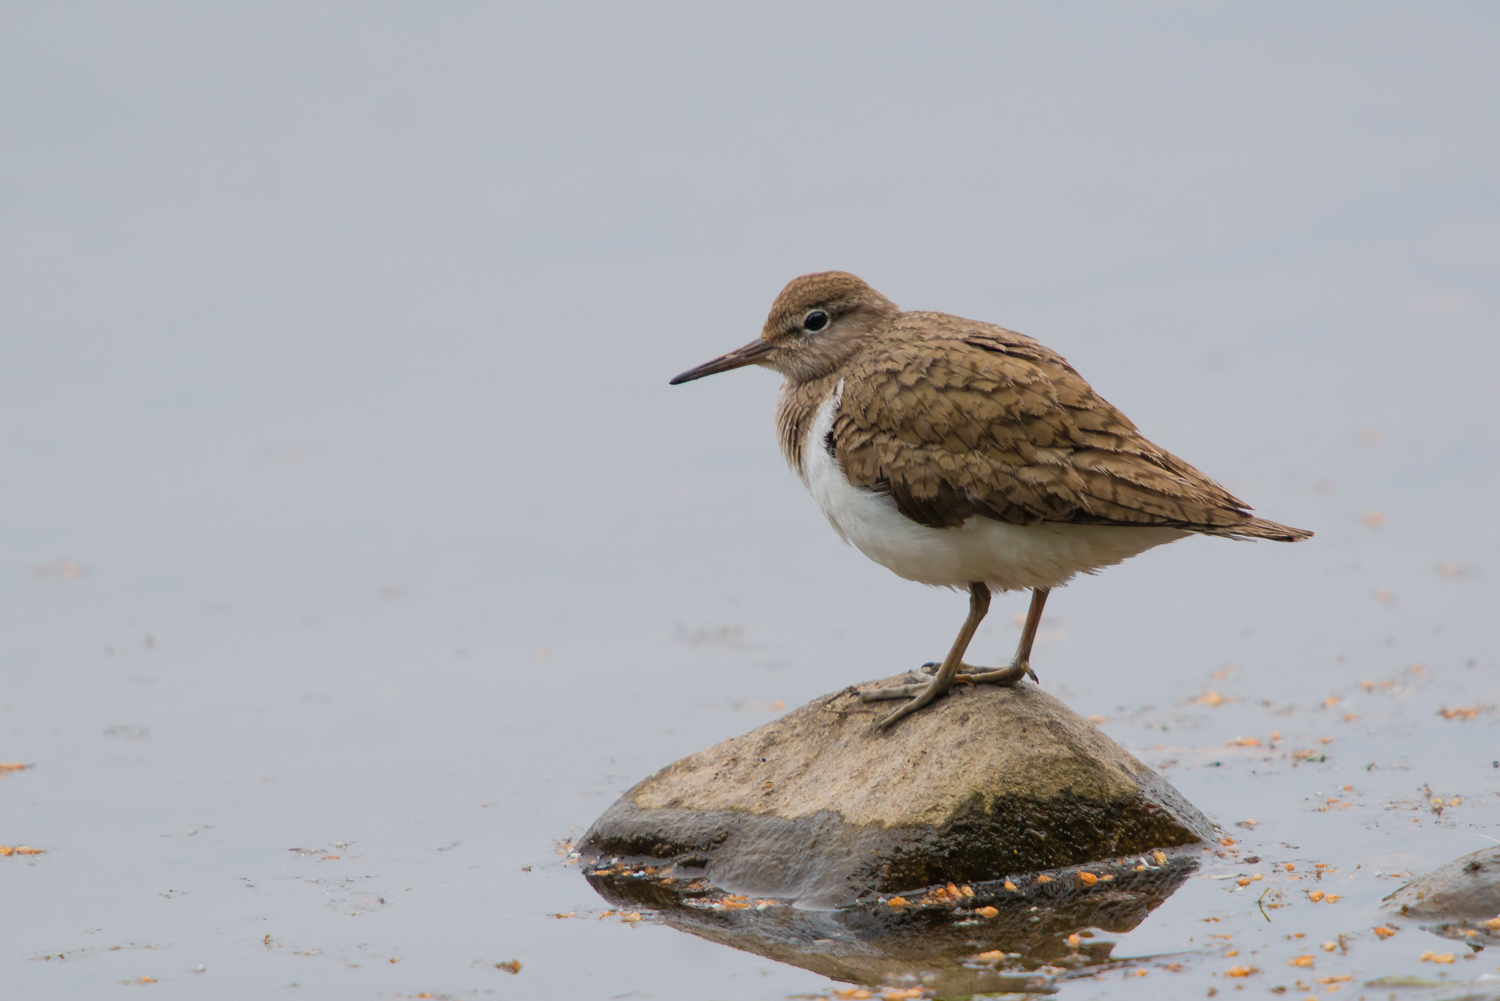 Common Sandpiper, British waders, birds, wildlife